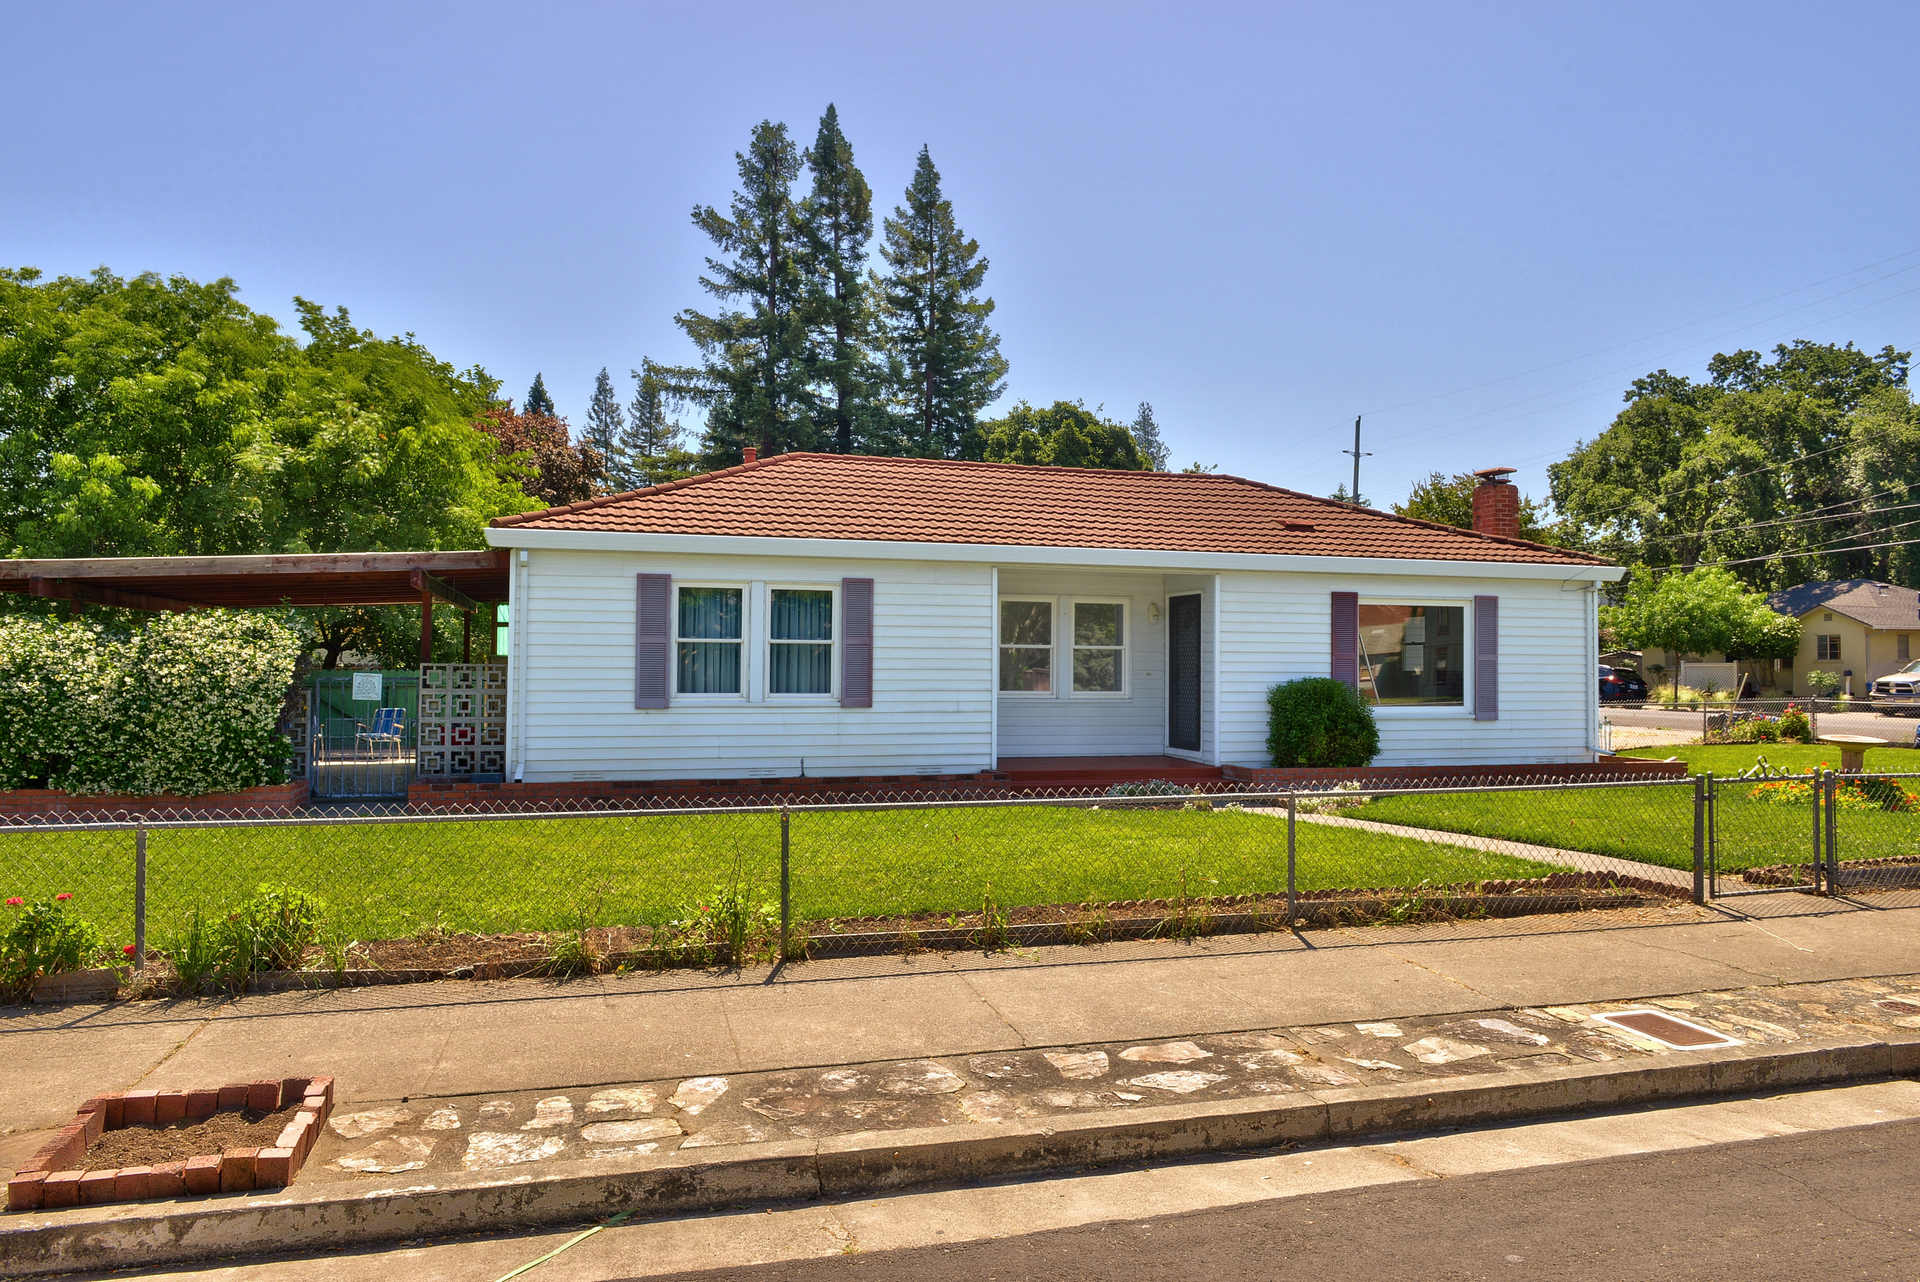 Built in 1950 and first time on the market! This quaint McDonald district home nestled on a very endearing street, offers 2bedrooms/1bathroom on a corner lot. This is truly a rare opportunity to own a piece of history in one of the most sought after neighborhoods in Santa Rosa!